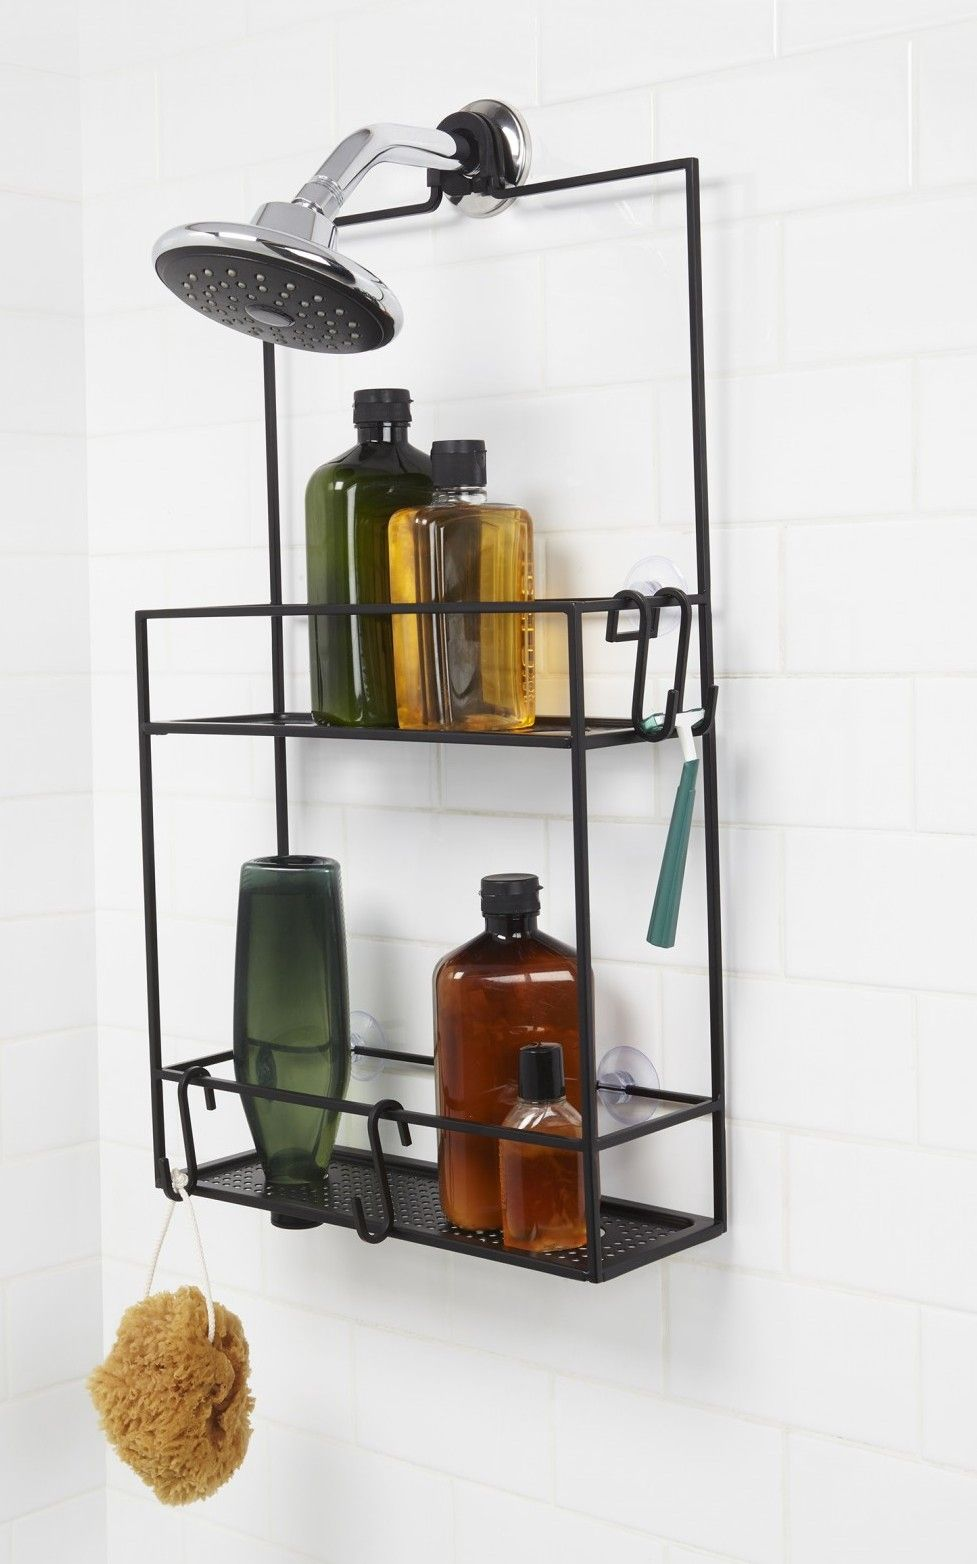 Cubiko Hanging Shower Caddy Hanging Shower Caddy Shower Caddy